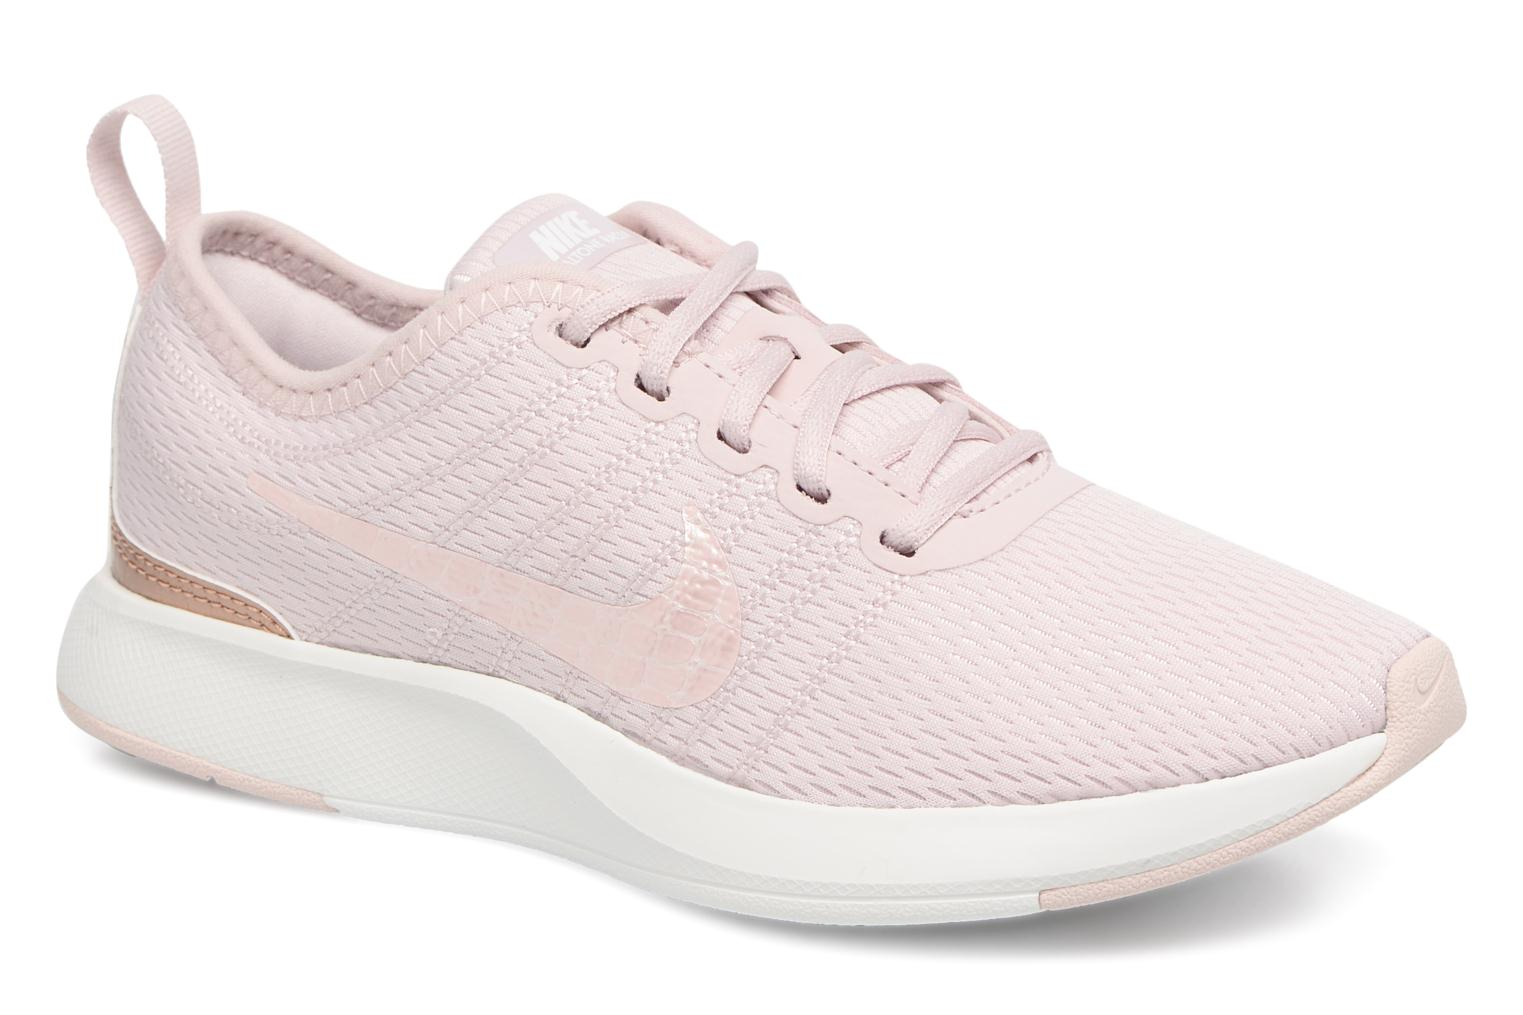 Nike Dualtone Racer (Ps) Barely Rose/Barely Rose-Mtlc Red Bronze